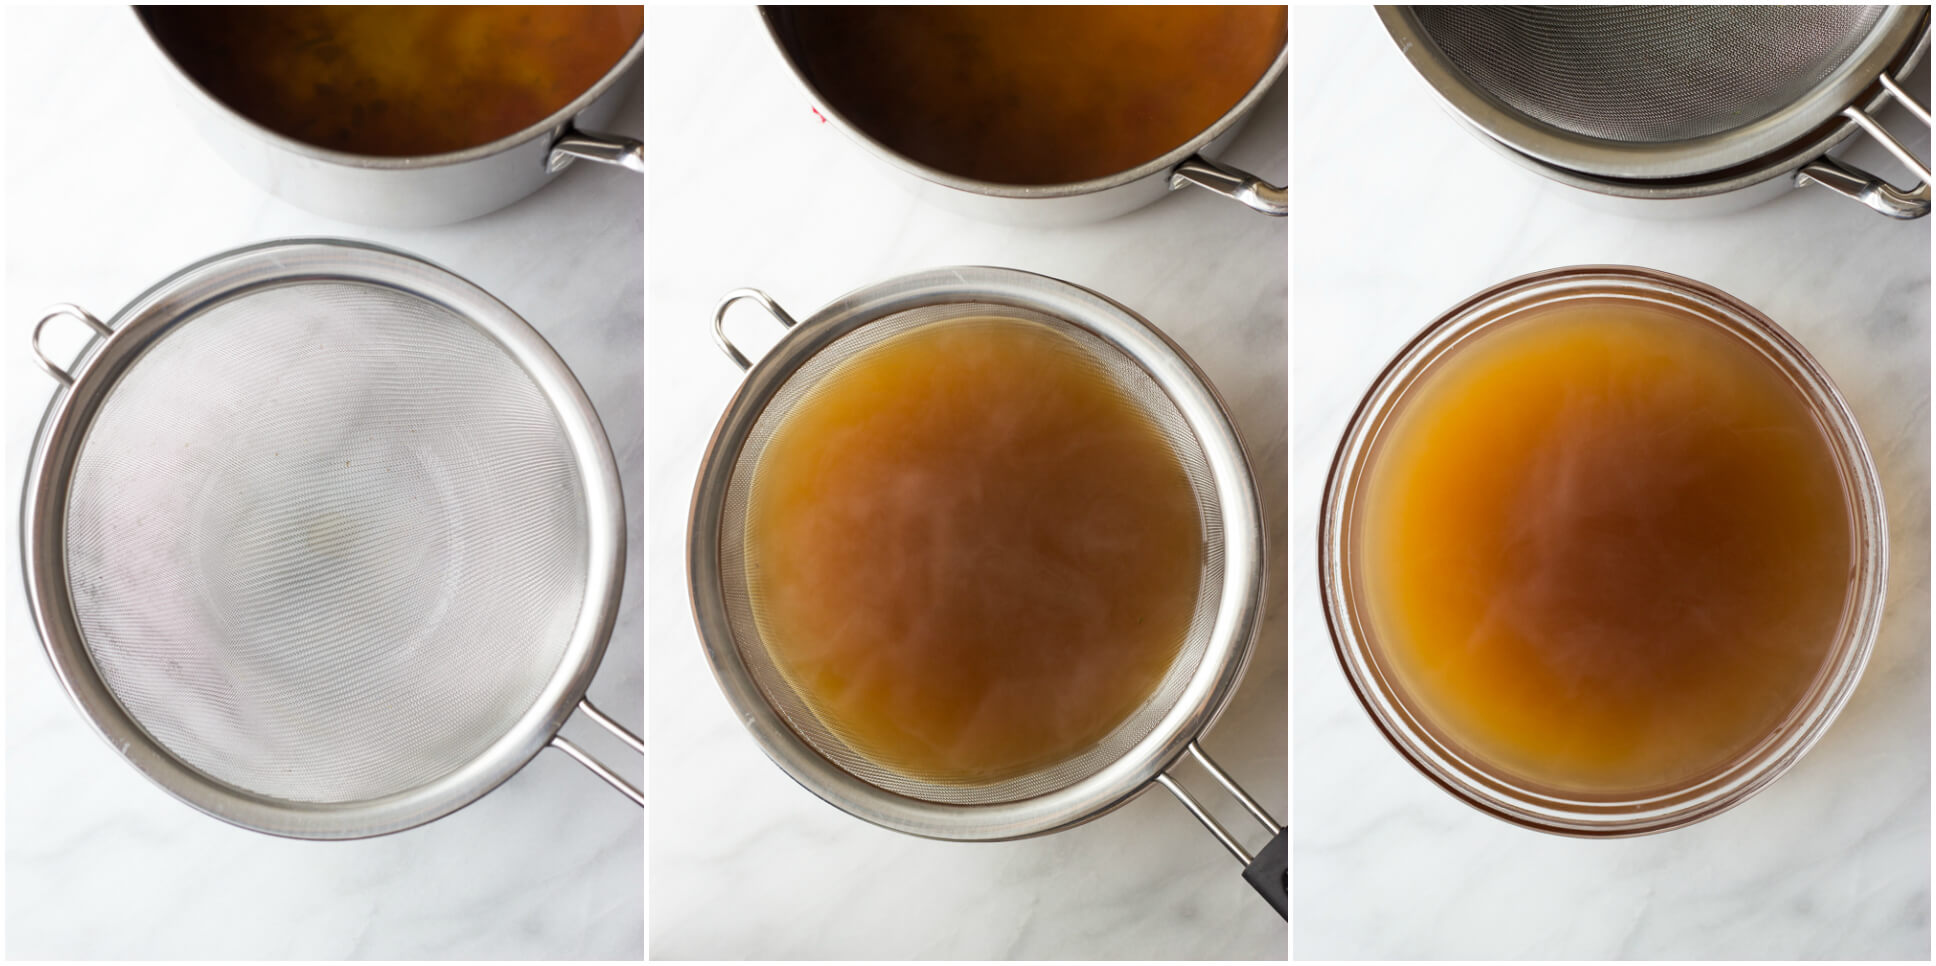 How to Make Vegetable Broth with Kitchen Scraps - homemade vegetable broth has never been easier! Save your scraps and make a broth | littlebroken.com @littlebroken